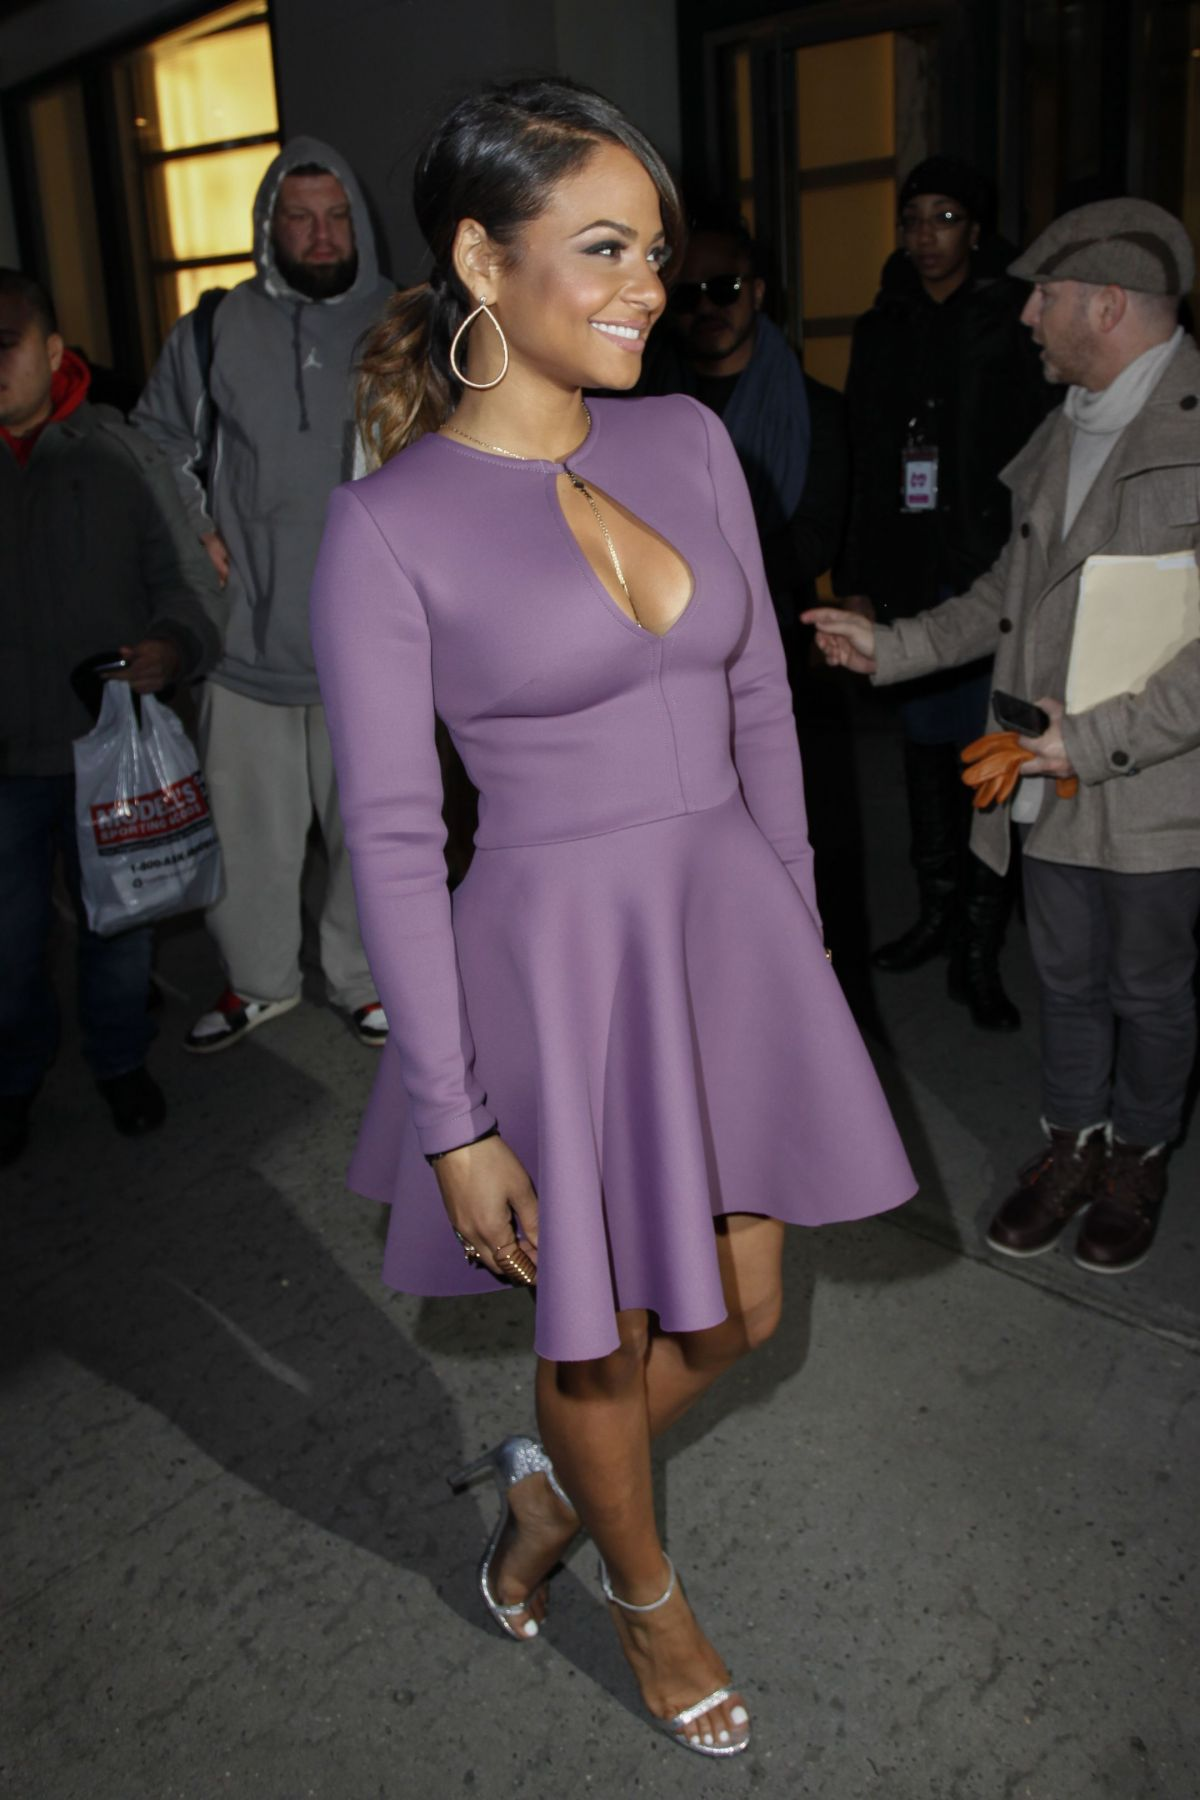 Remarkable, christina milian tight dress